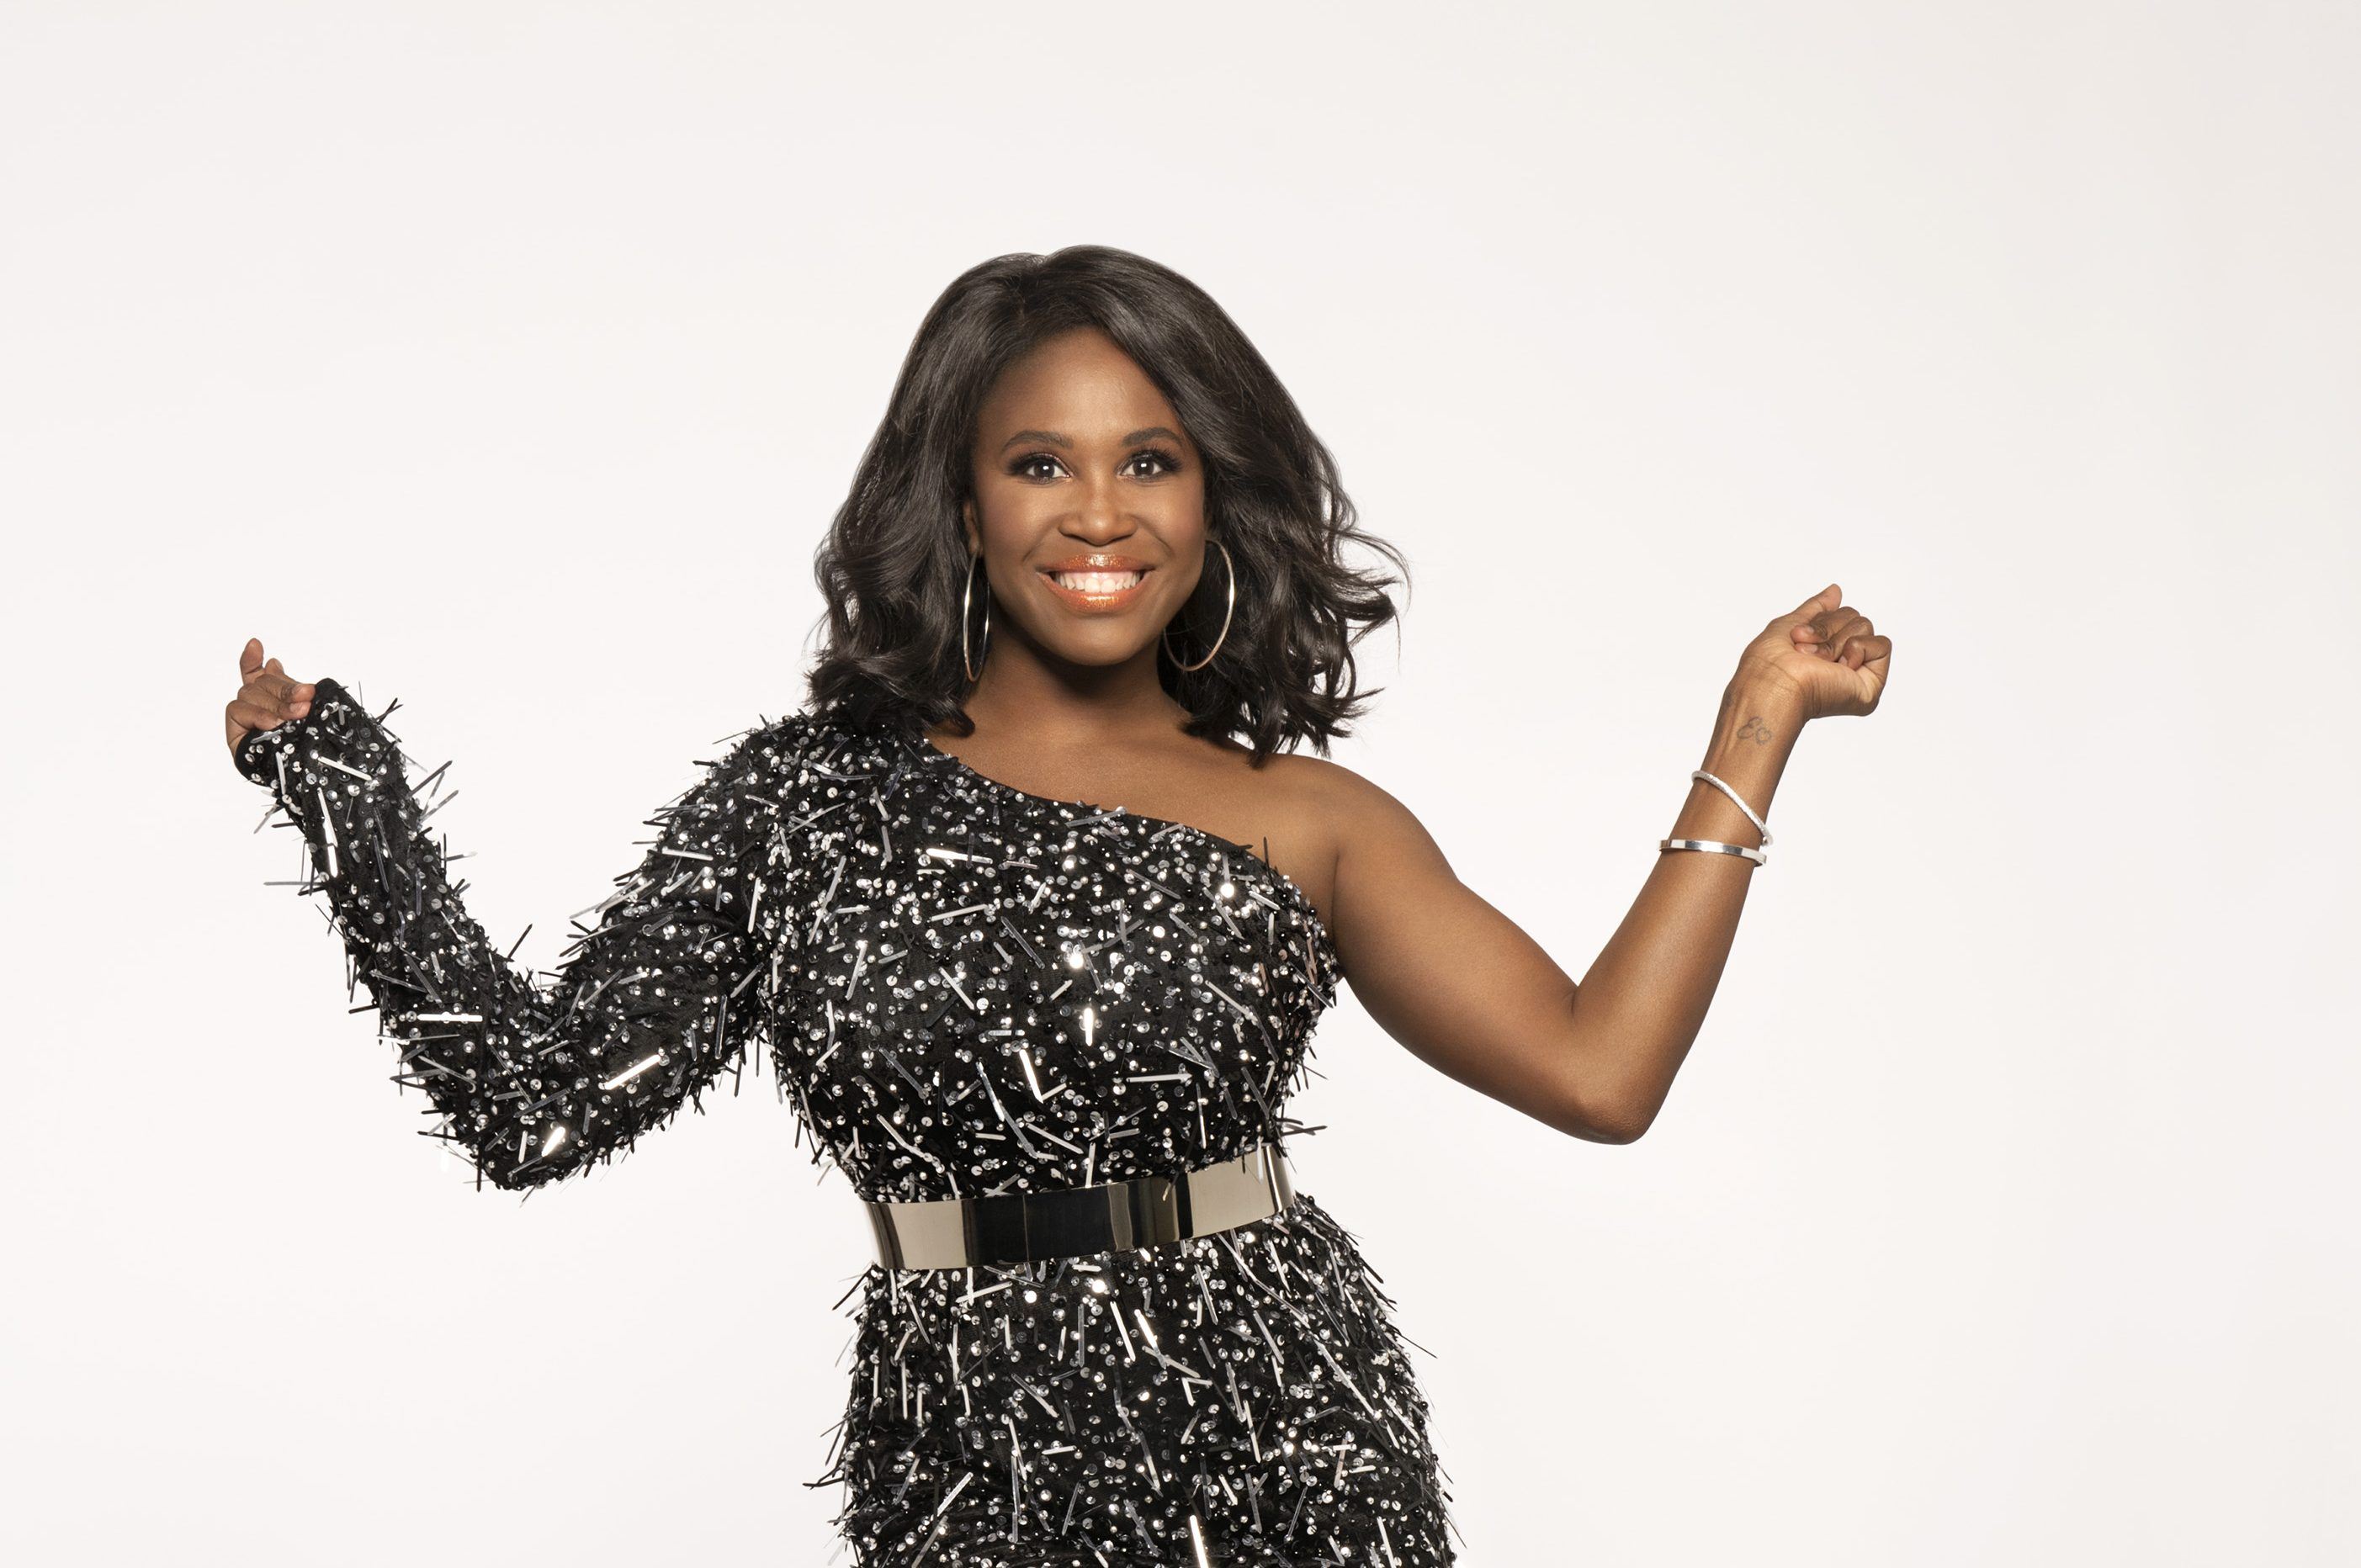 Strictly Come Dancing: Motsi Mabuse insists she will judge sister Oti fairly